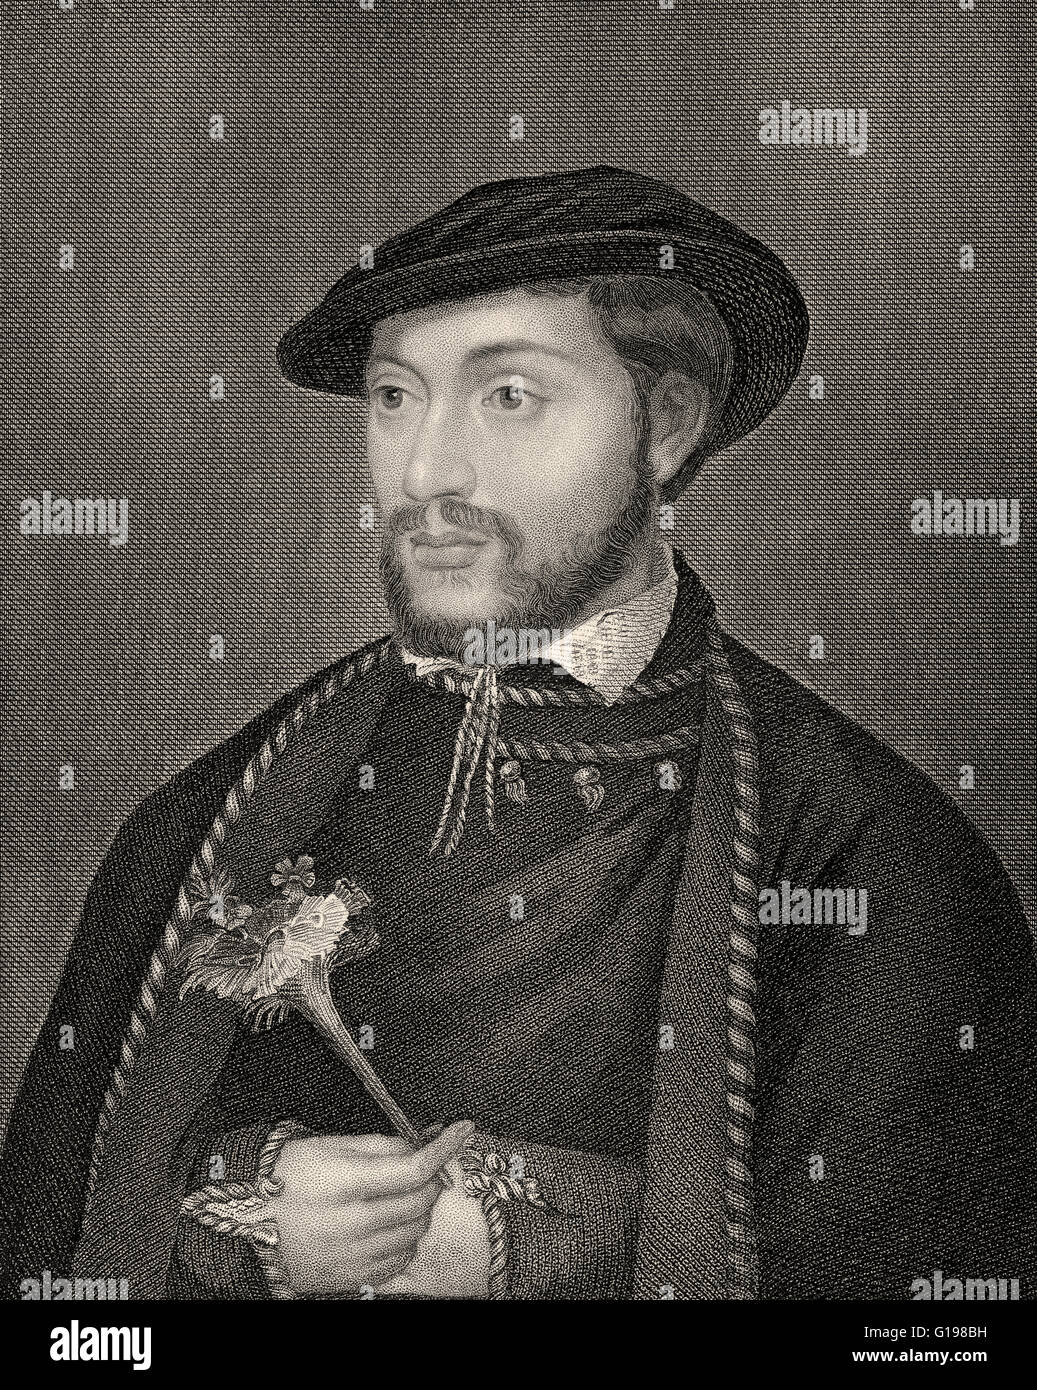 John Dudley, 1st Duke of Northumberland, KG, 1504-1553, an English general, admiral, and politician - Stock Image